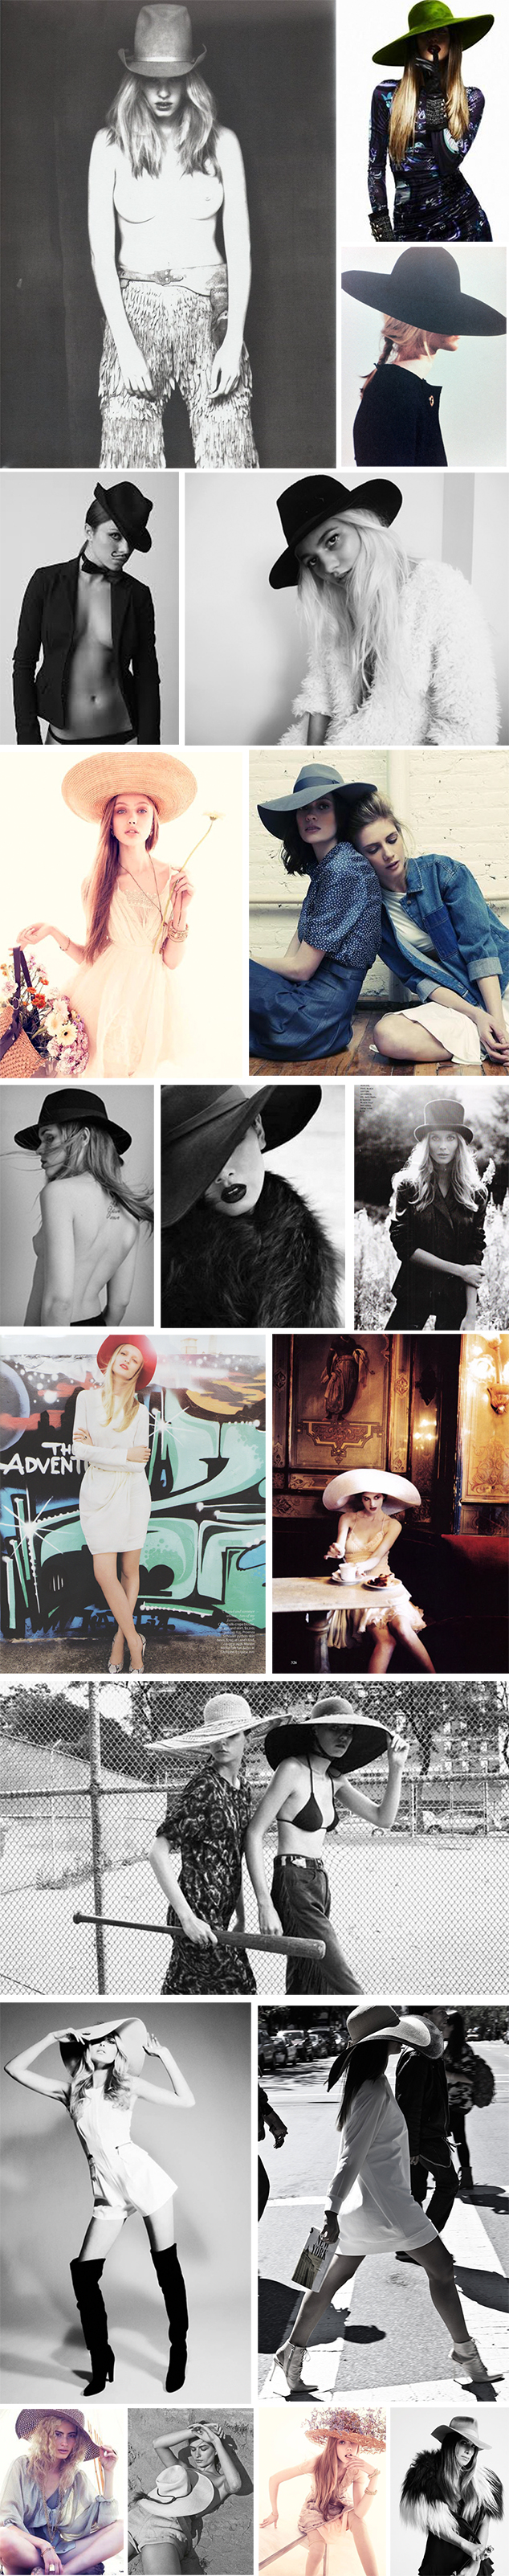 hat fashion editorial